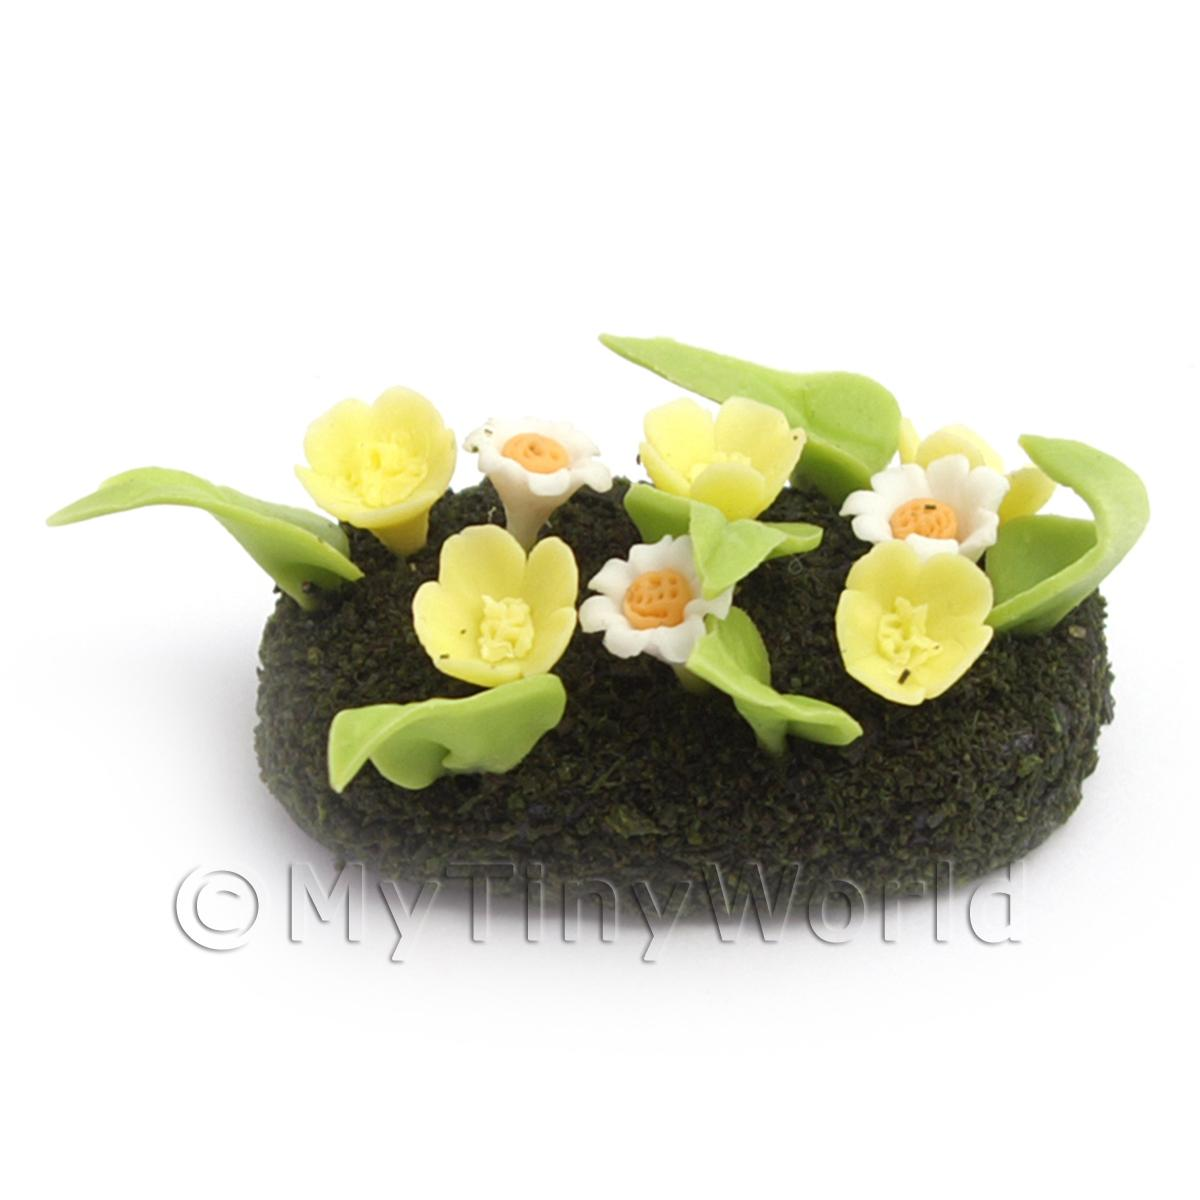 Dolls House Miniature Small DIY Flower Bed (DIY18)